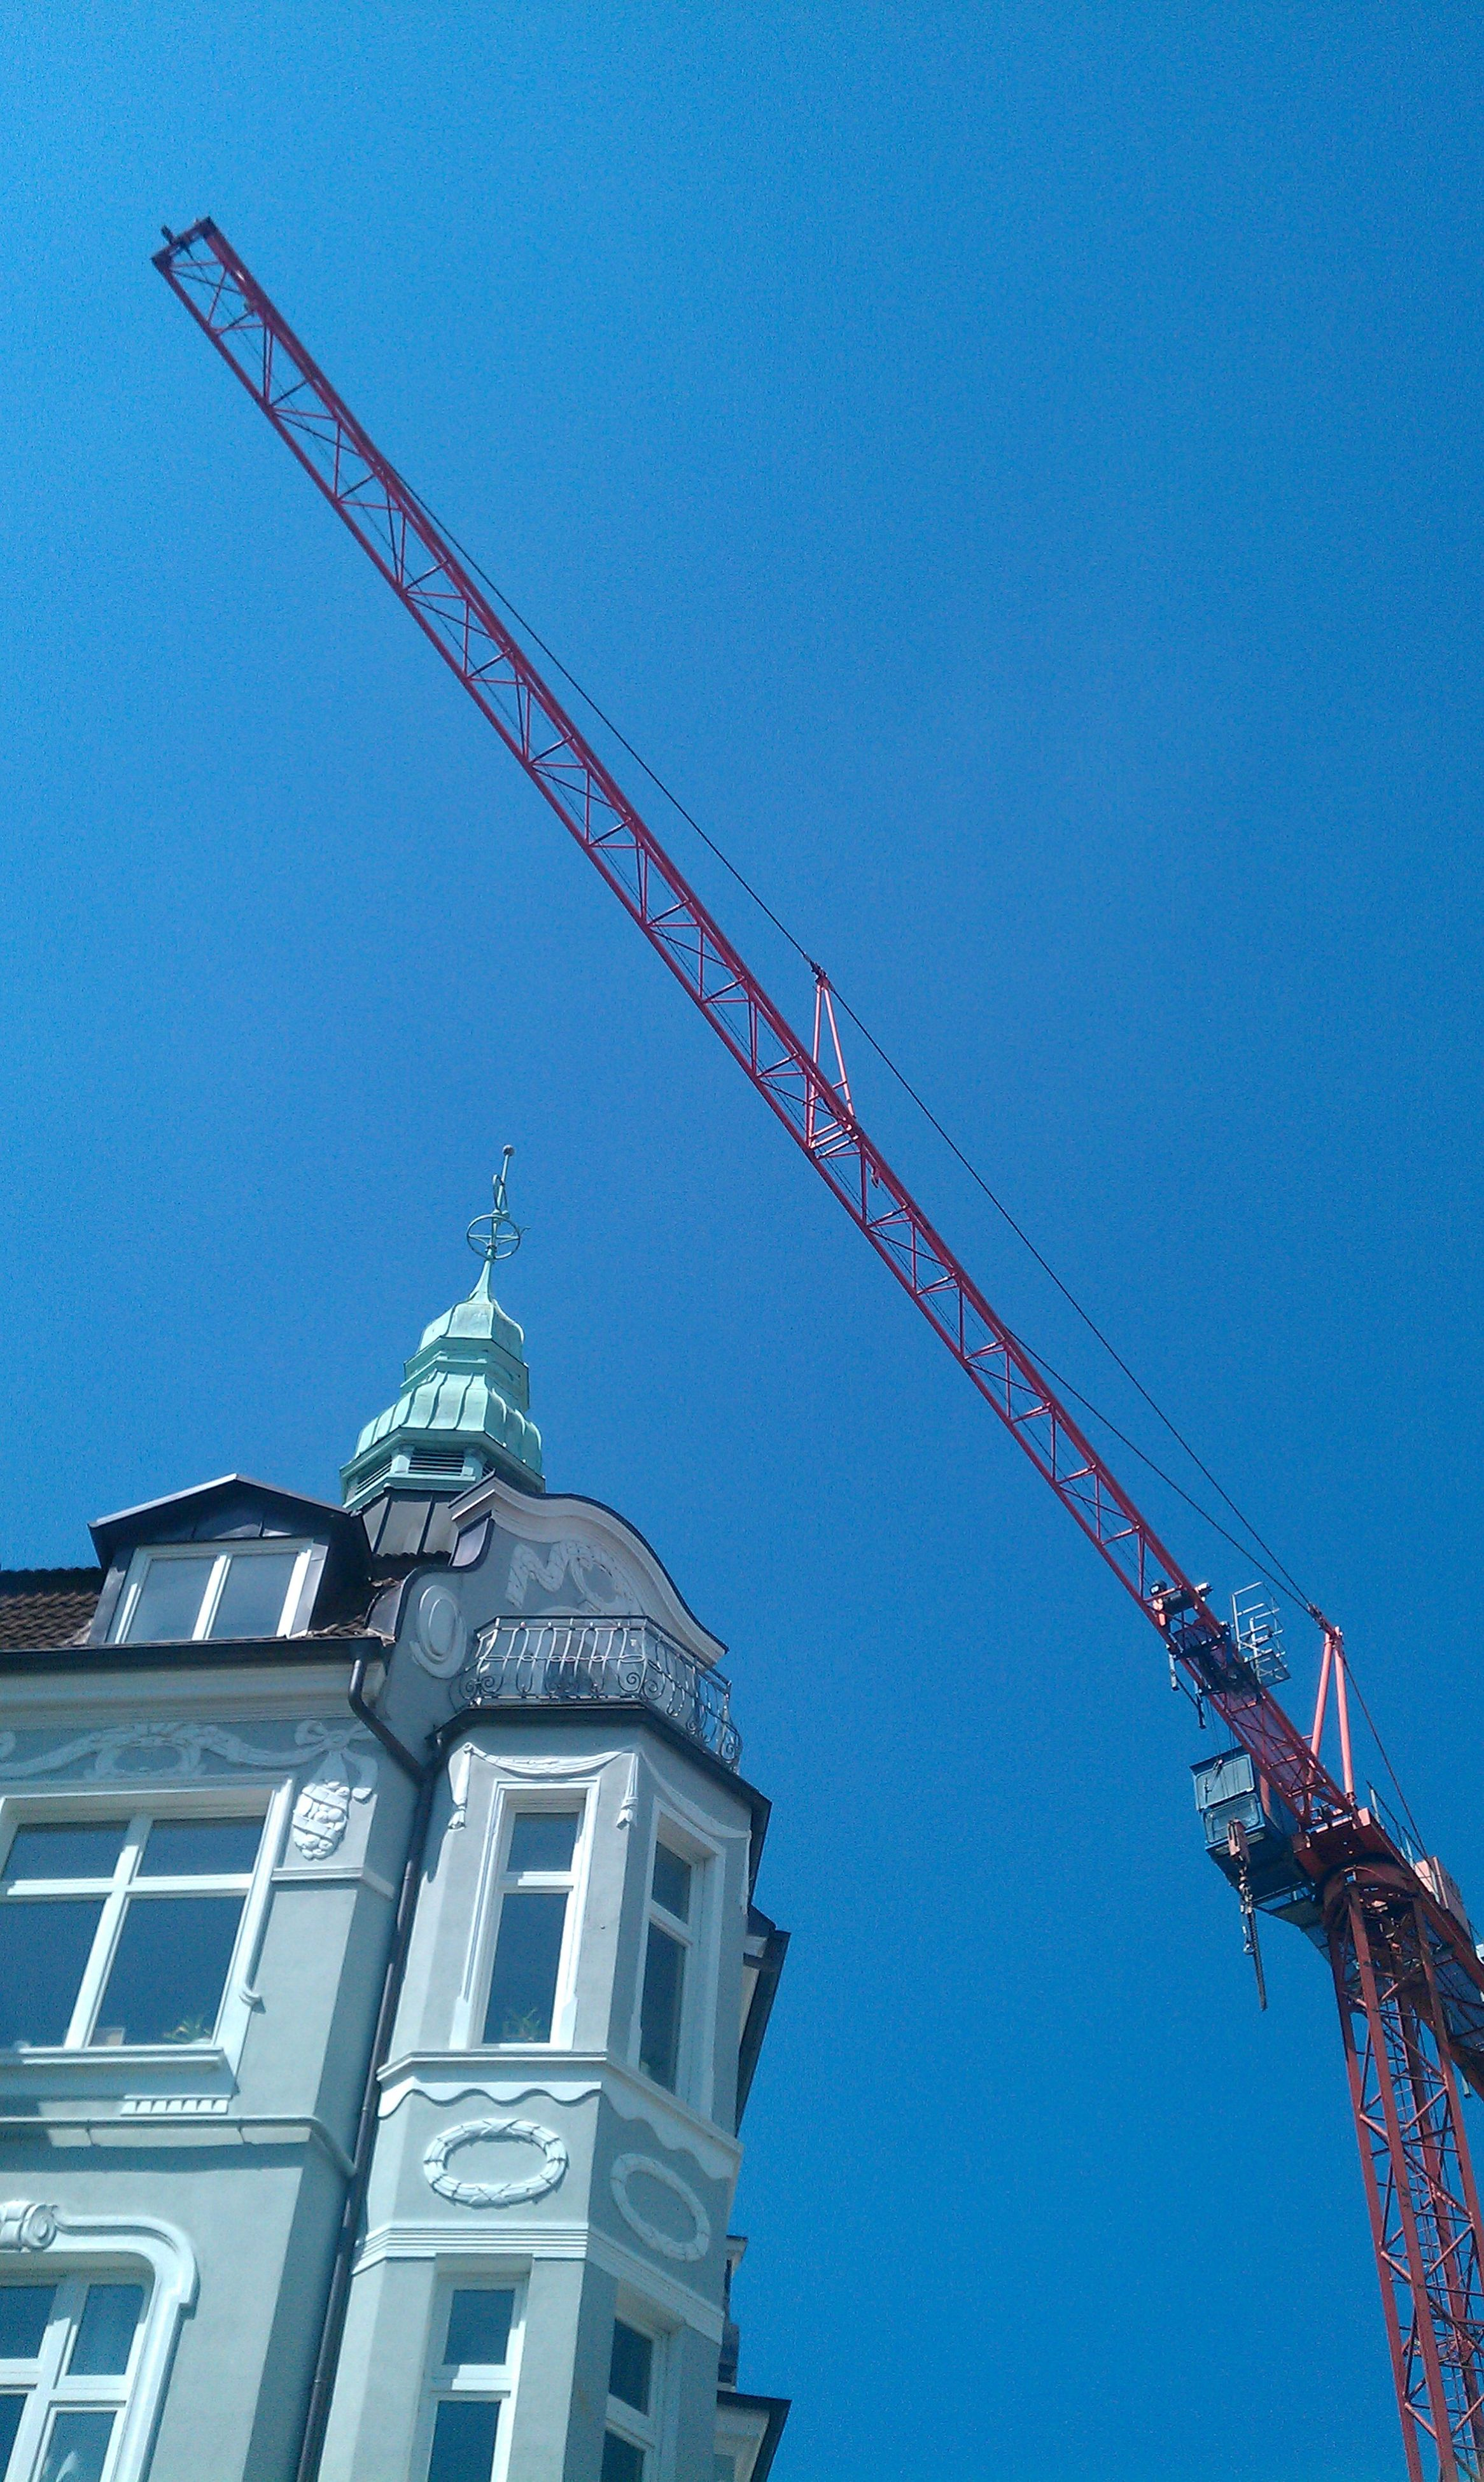 low angle view, architecture, built structure, building exterior, clear sky, crane - construction machinery, blue, construction site, copy space, development, crane, construction, tall - high, high section, tower, outdoors, day, city, no people, building